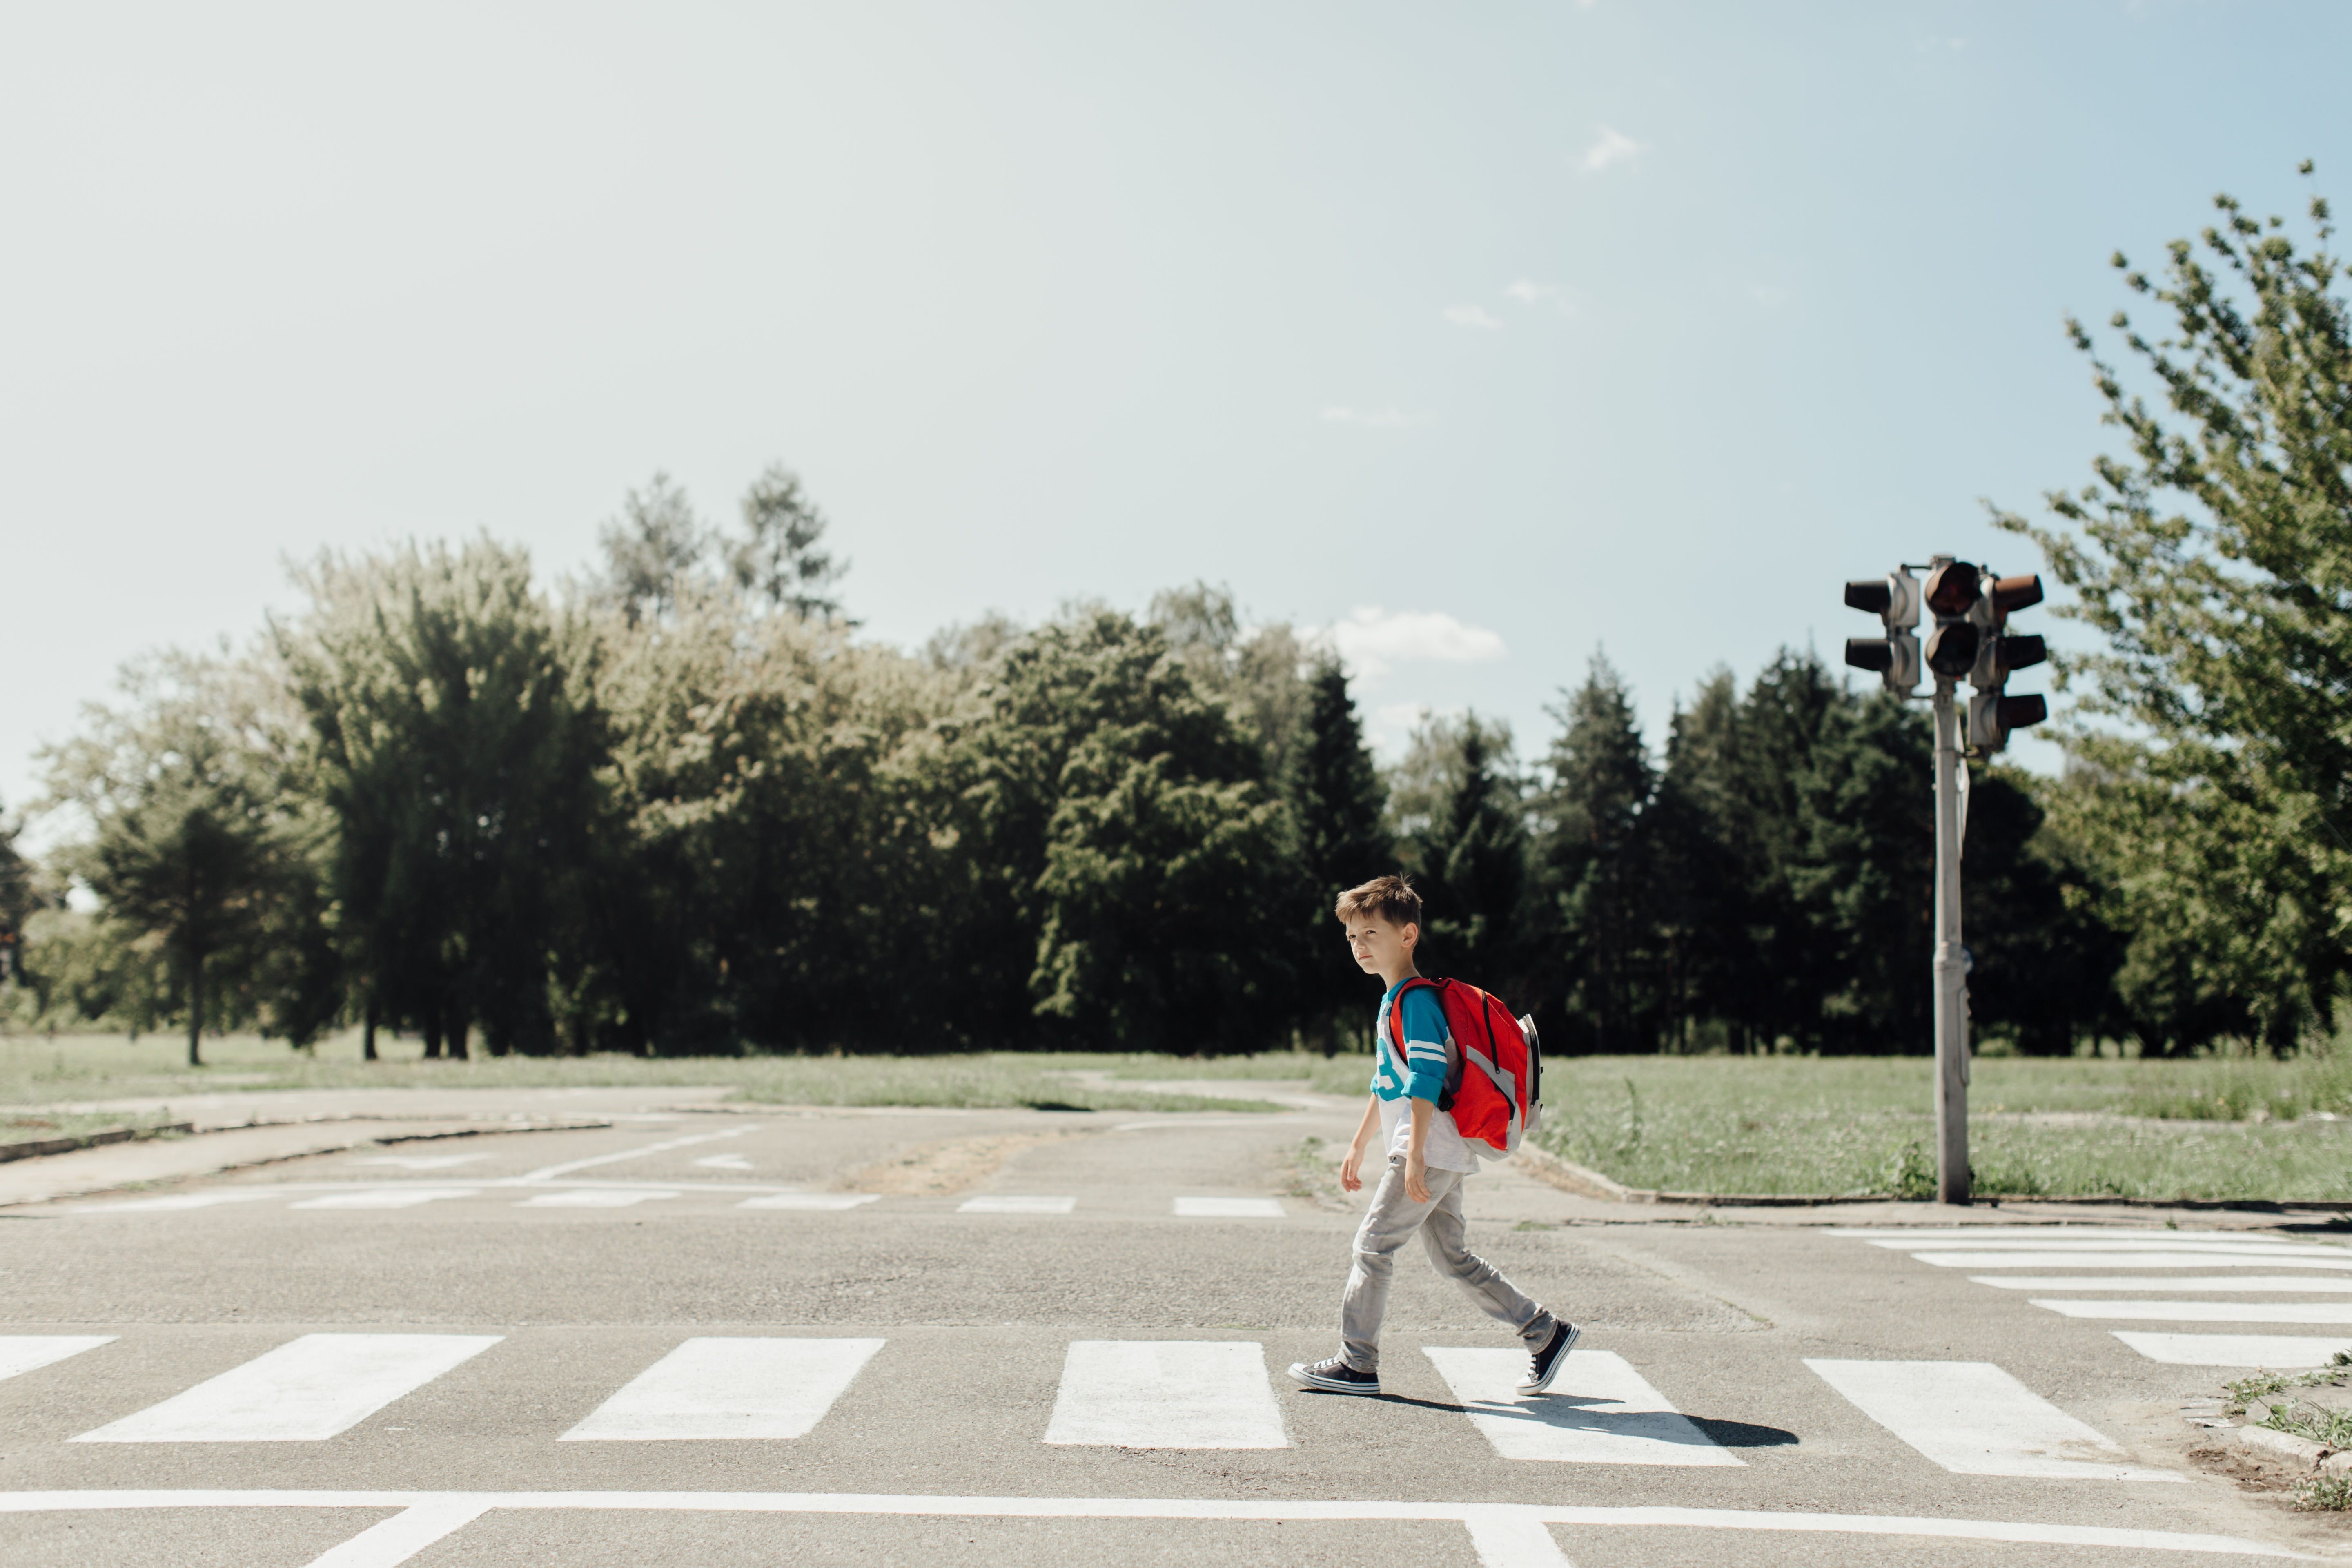 Letting kids roam: What's allowed, where, and at what age